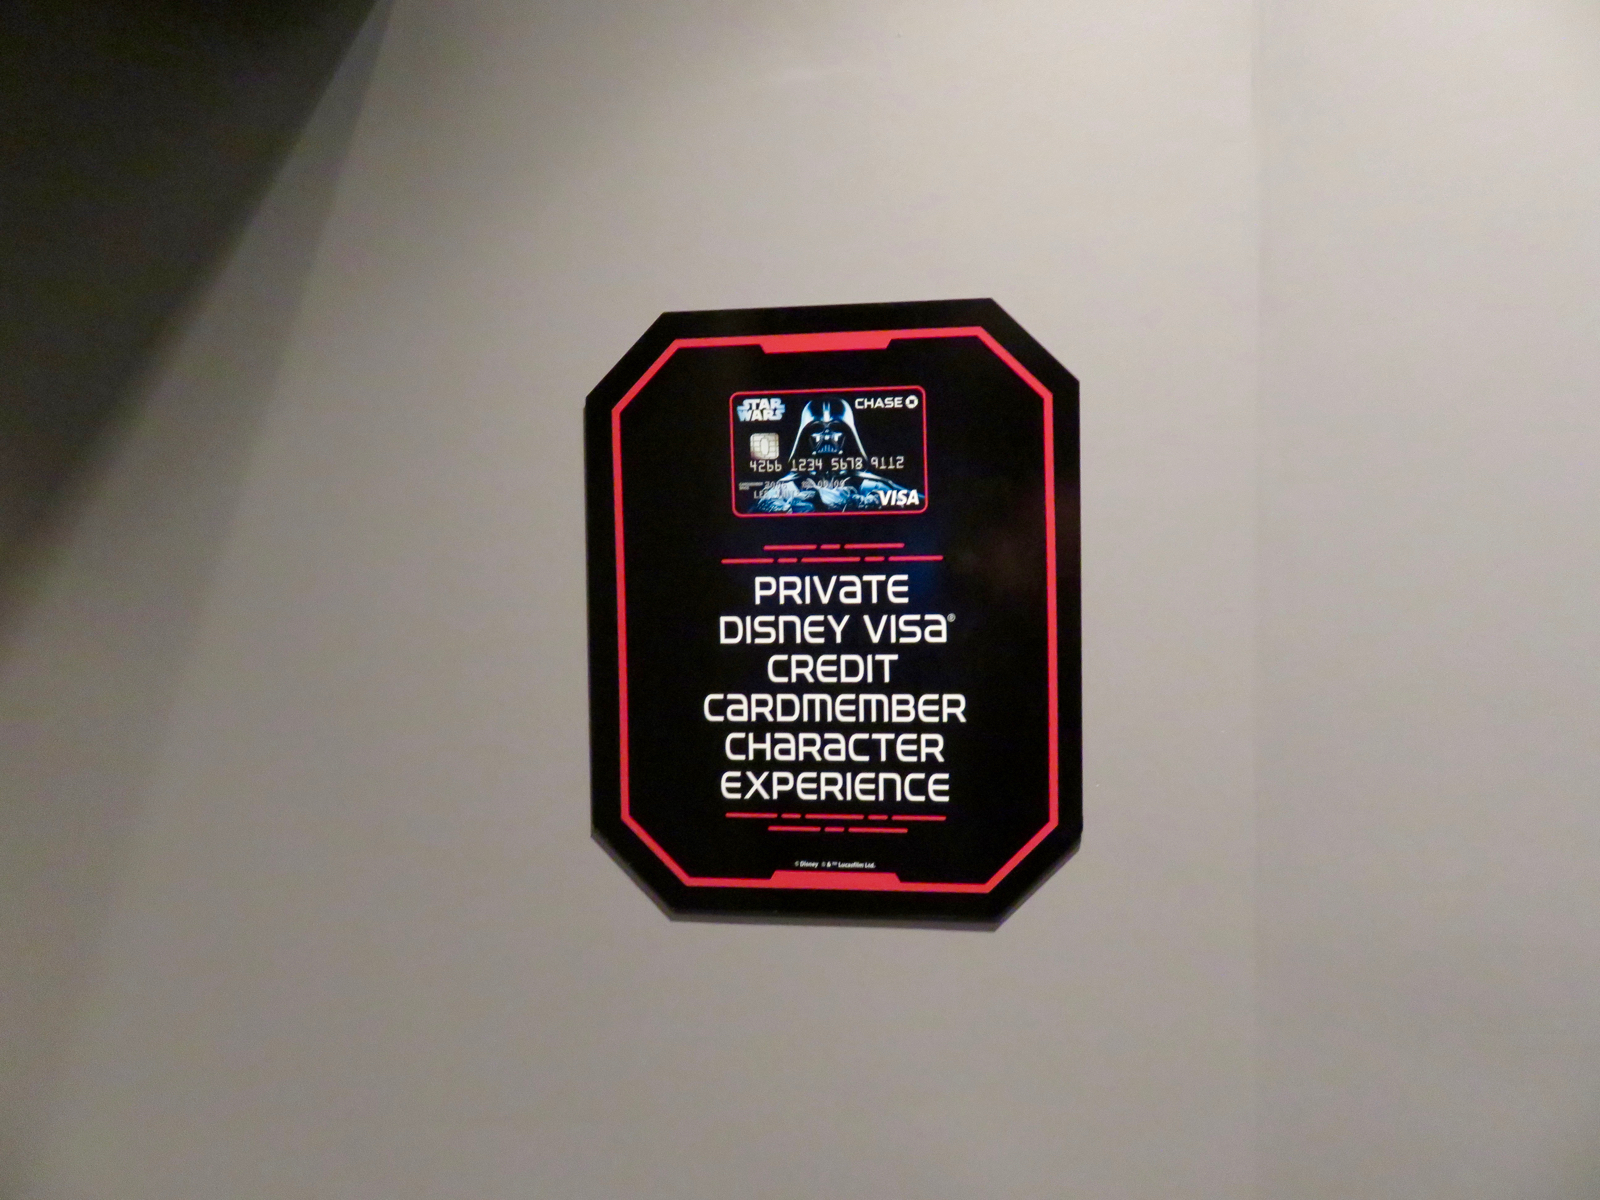 Mouseplanet walt disney world resort update for december 8 13 a private disney visa cardholder photo encounter is also available during published hours in the star wars launch bay photo by alan s dalinka m4hsunfo